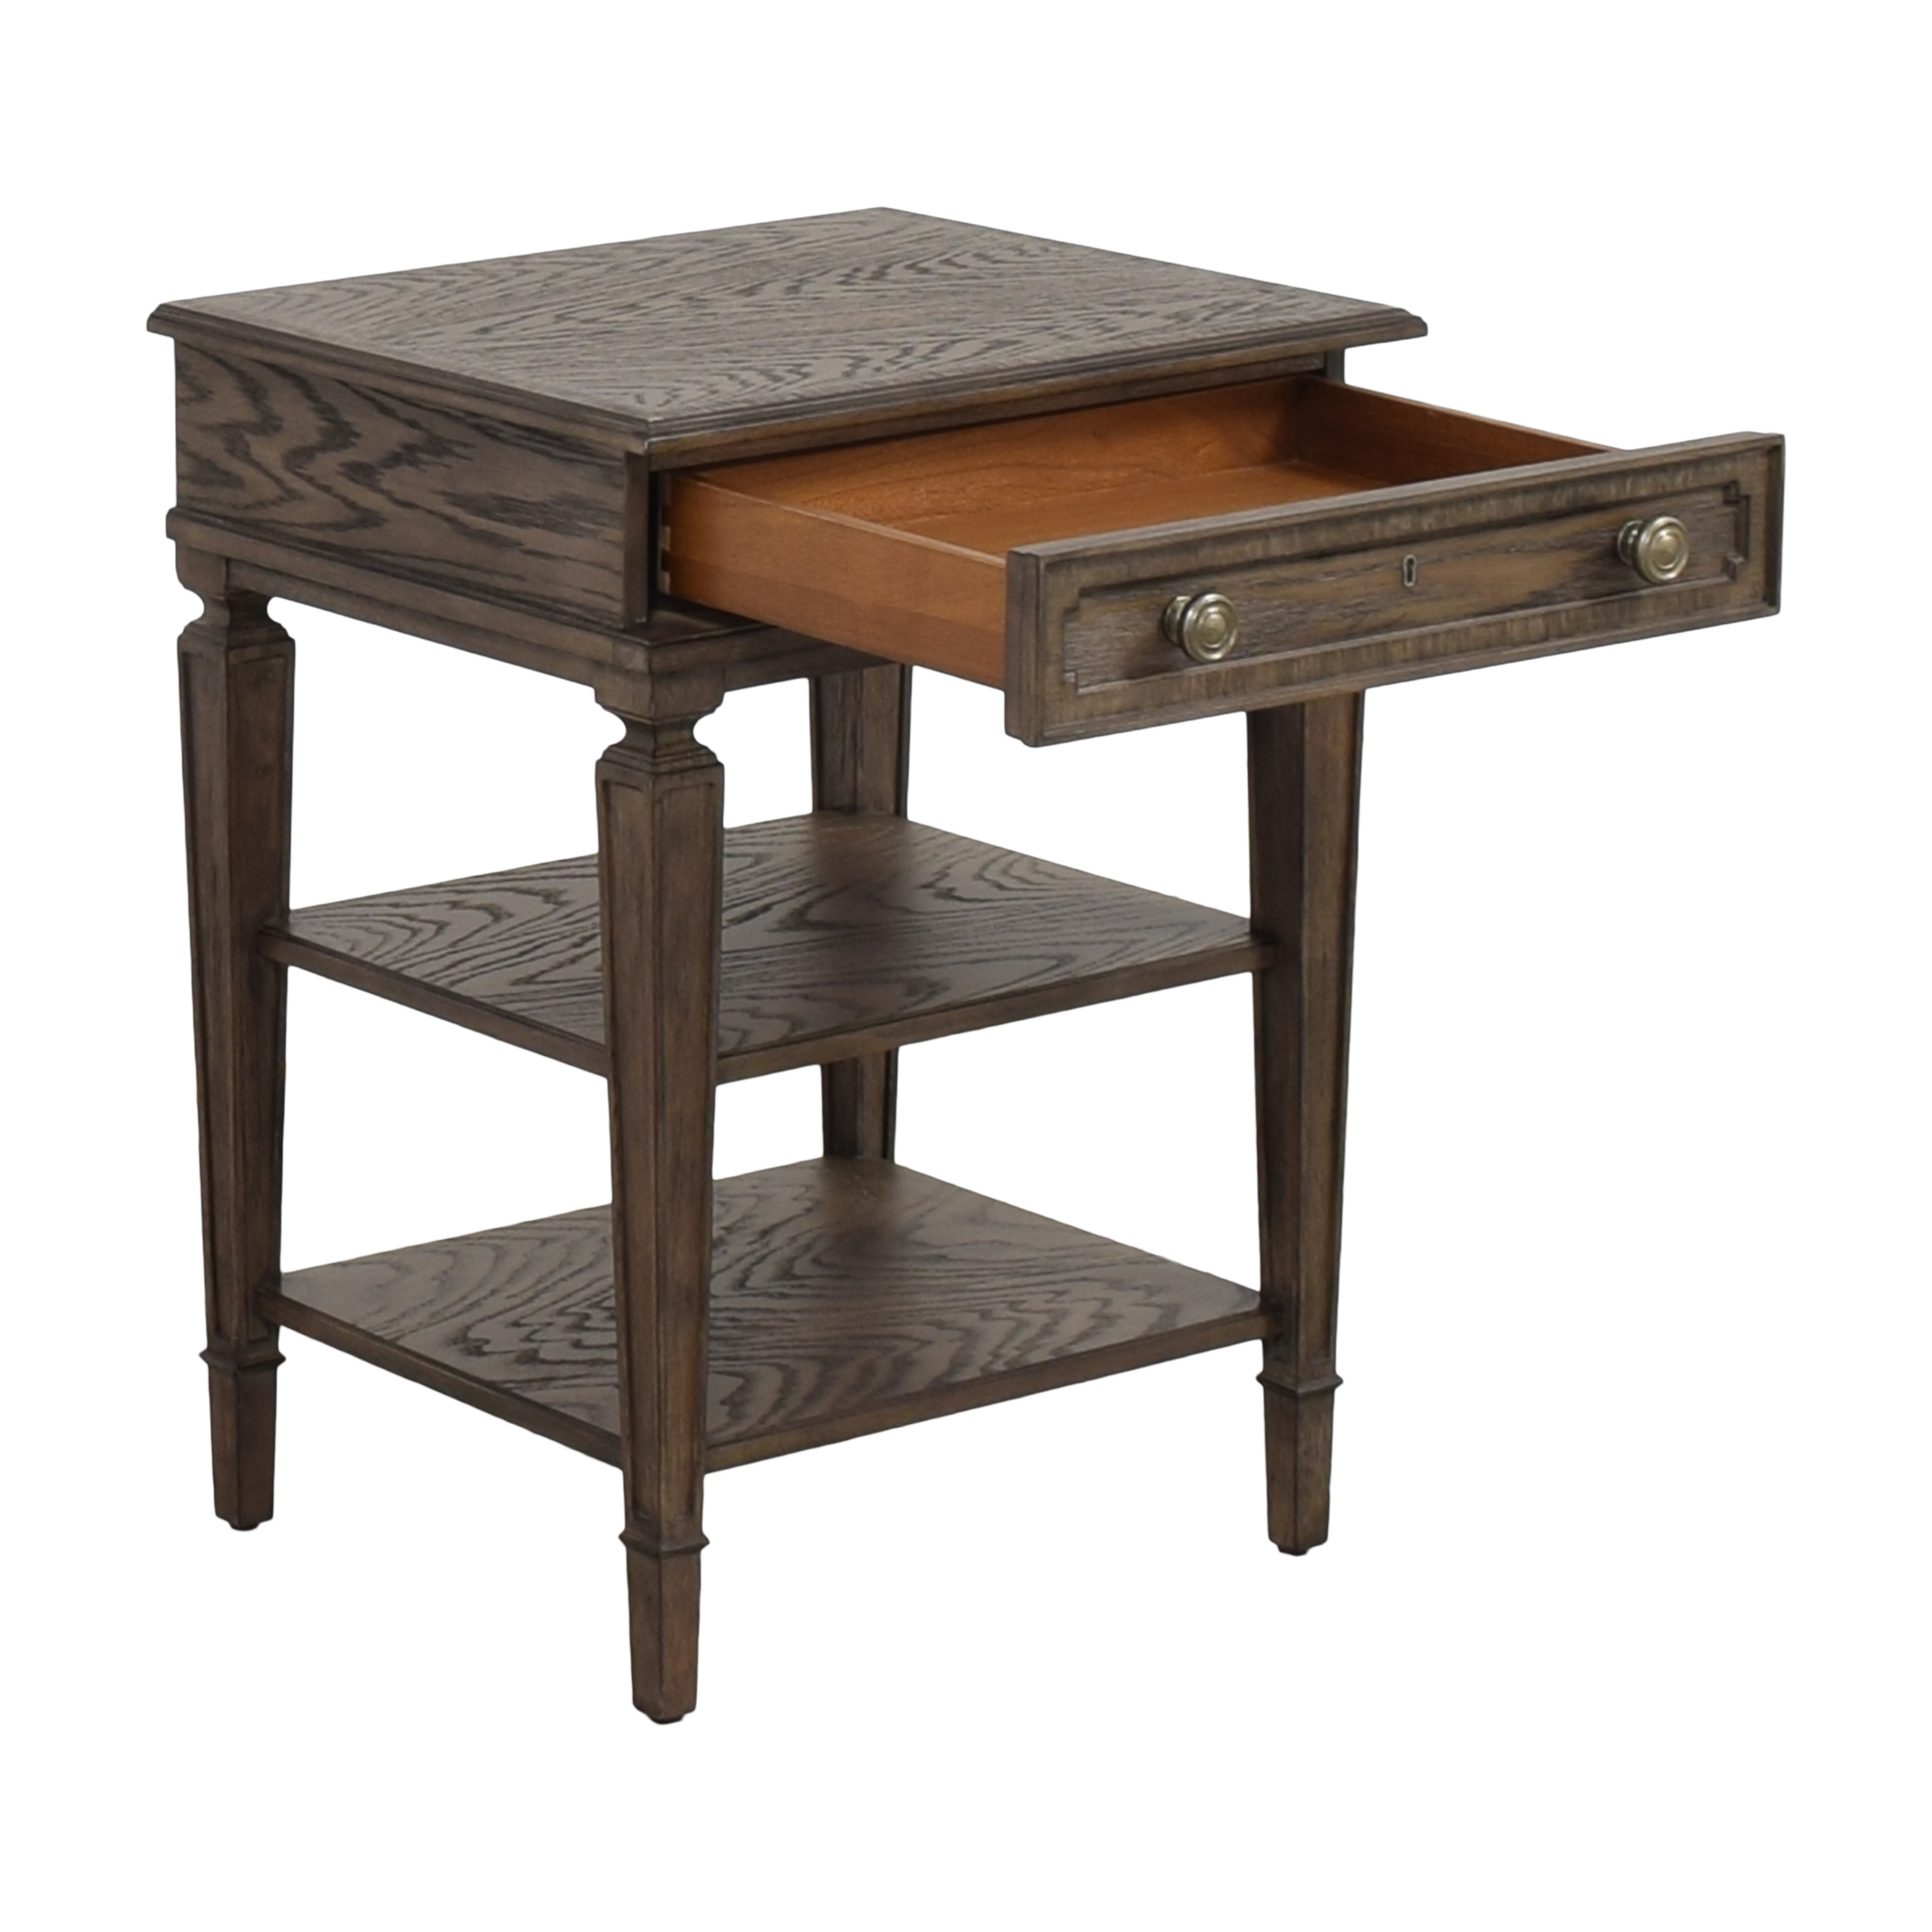 Stanley Furniture Stanley Furniture Wethersfield Estate Single Drawer End Table pa